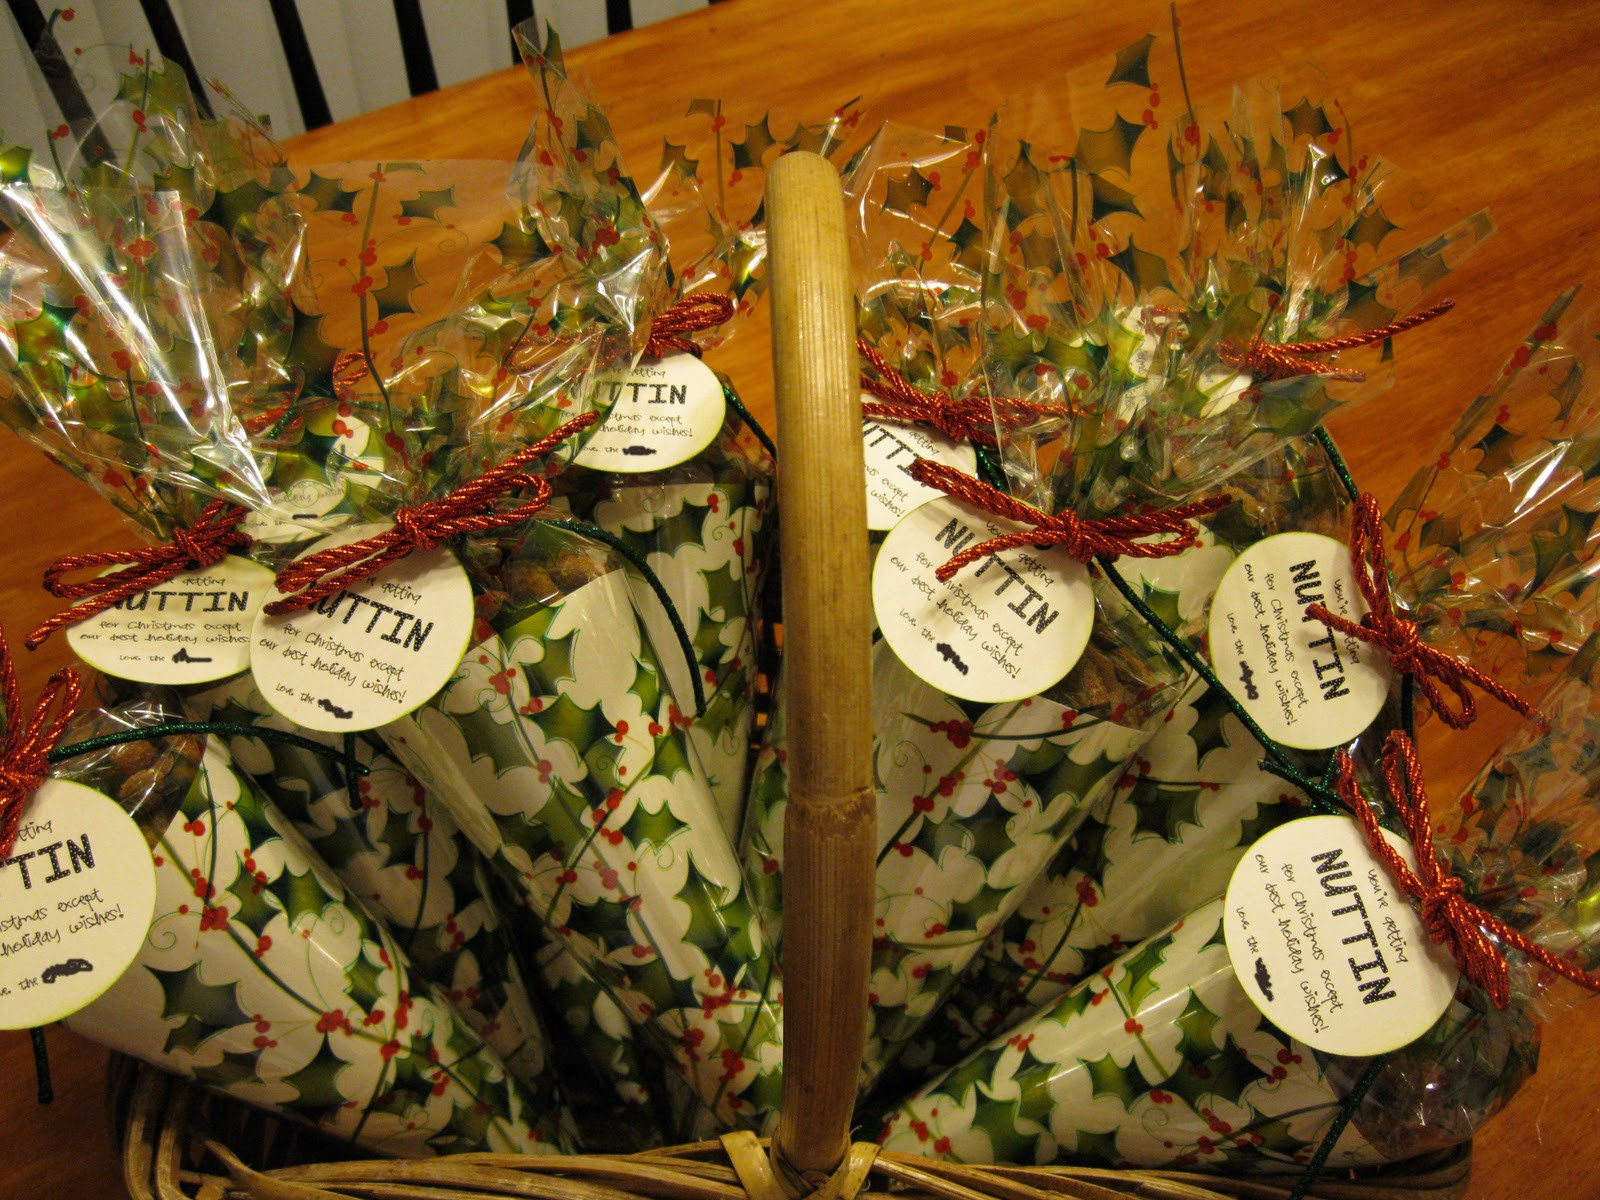 Group Gift Ideas For Christmas  Maple and Vine Cute Christmas Gift Ideas for Groups